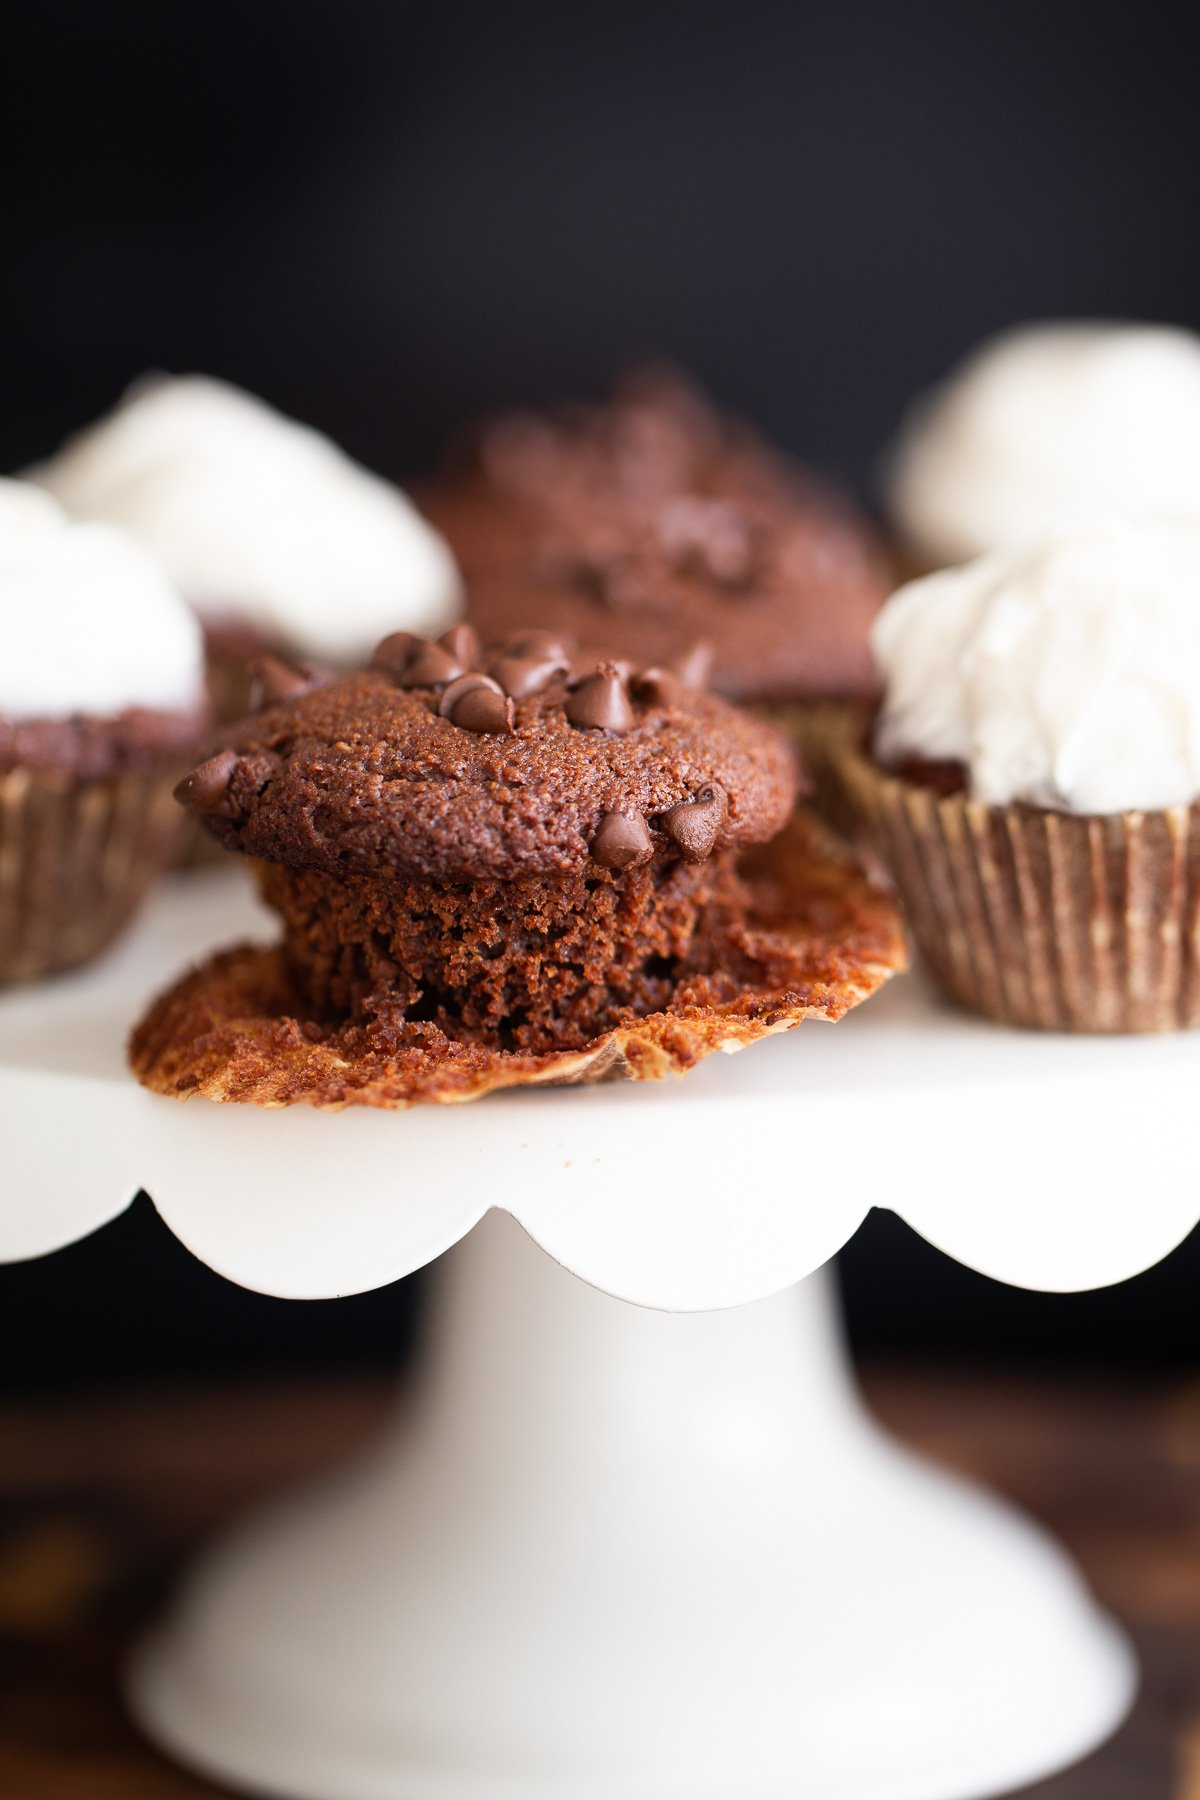 vegan chocolate cupcakes on a white cake stand